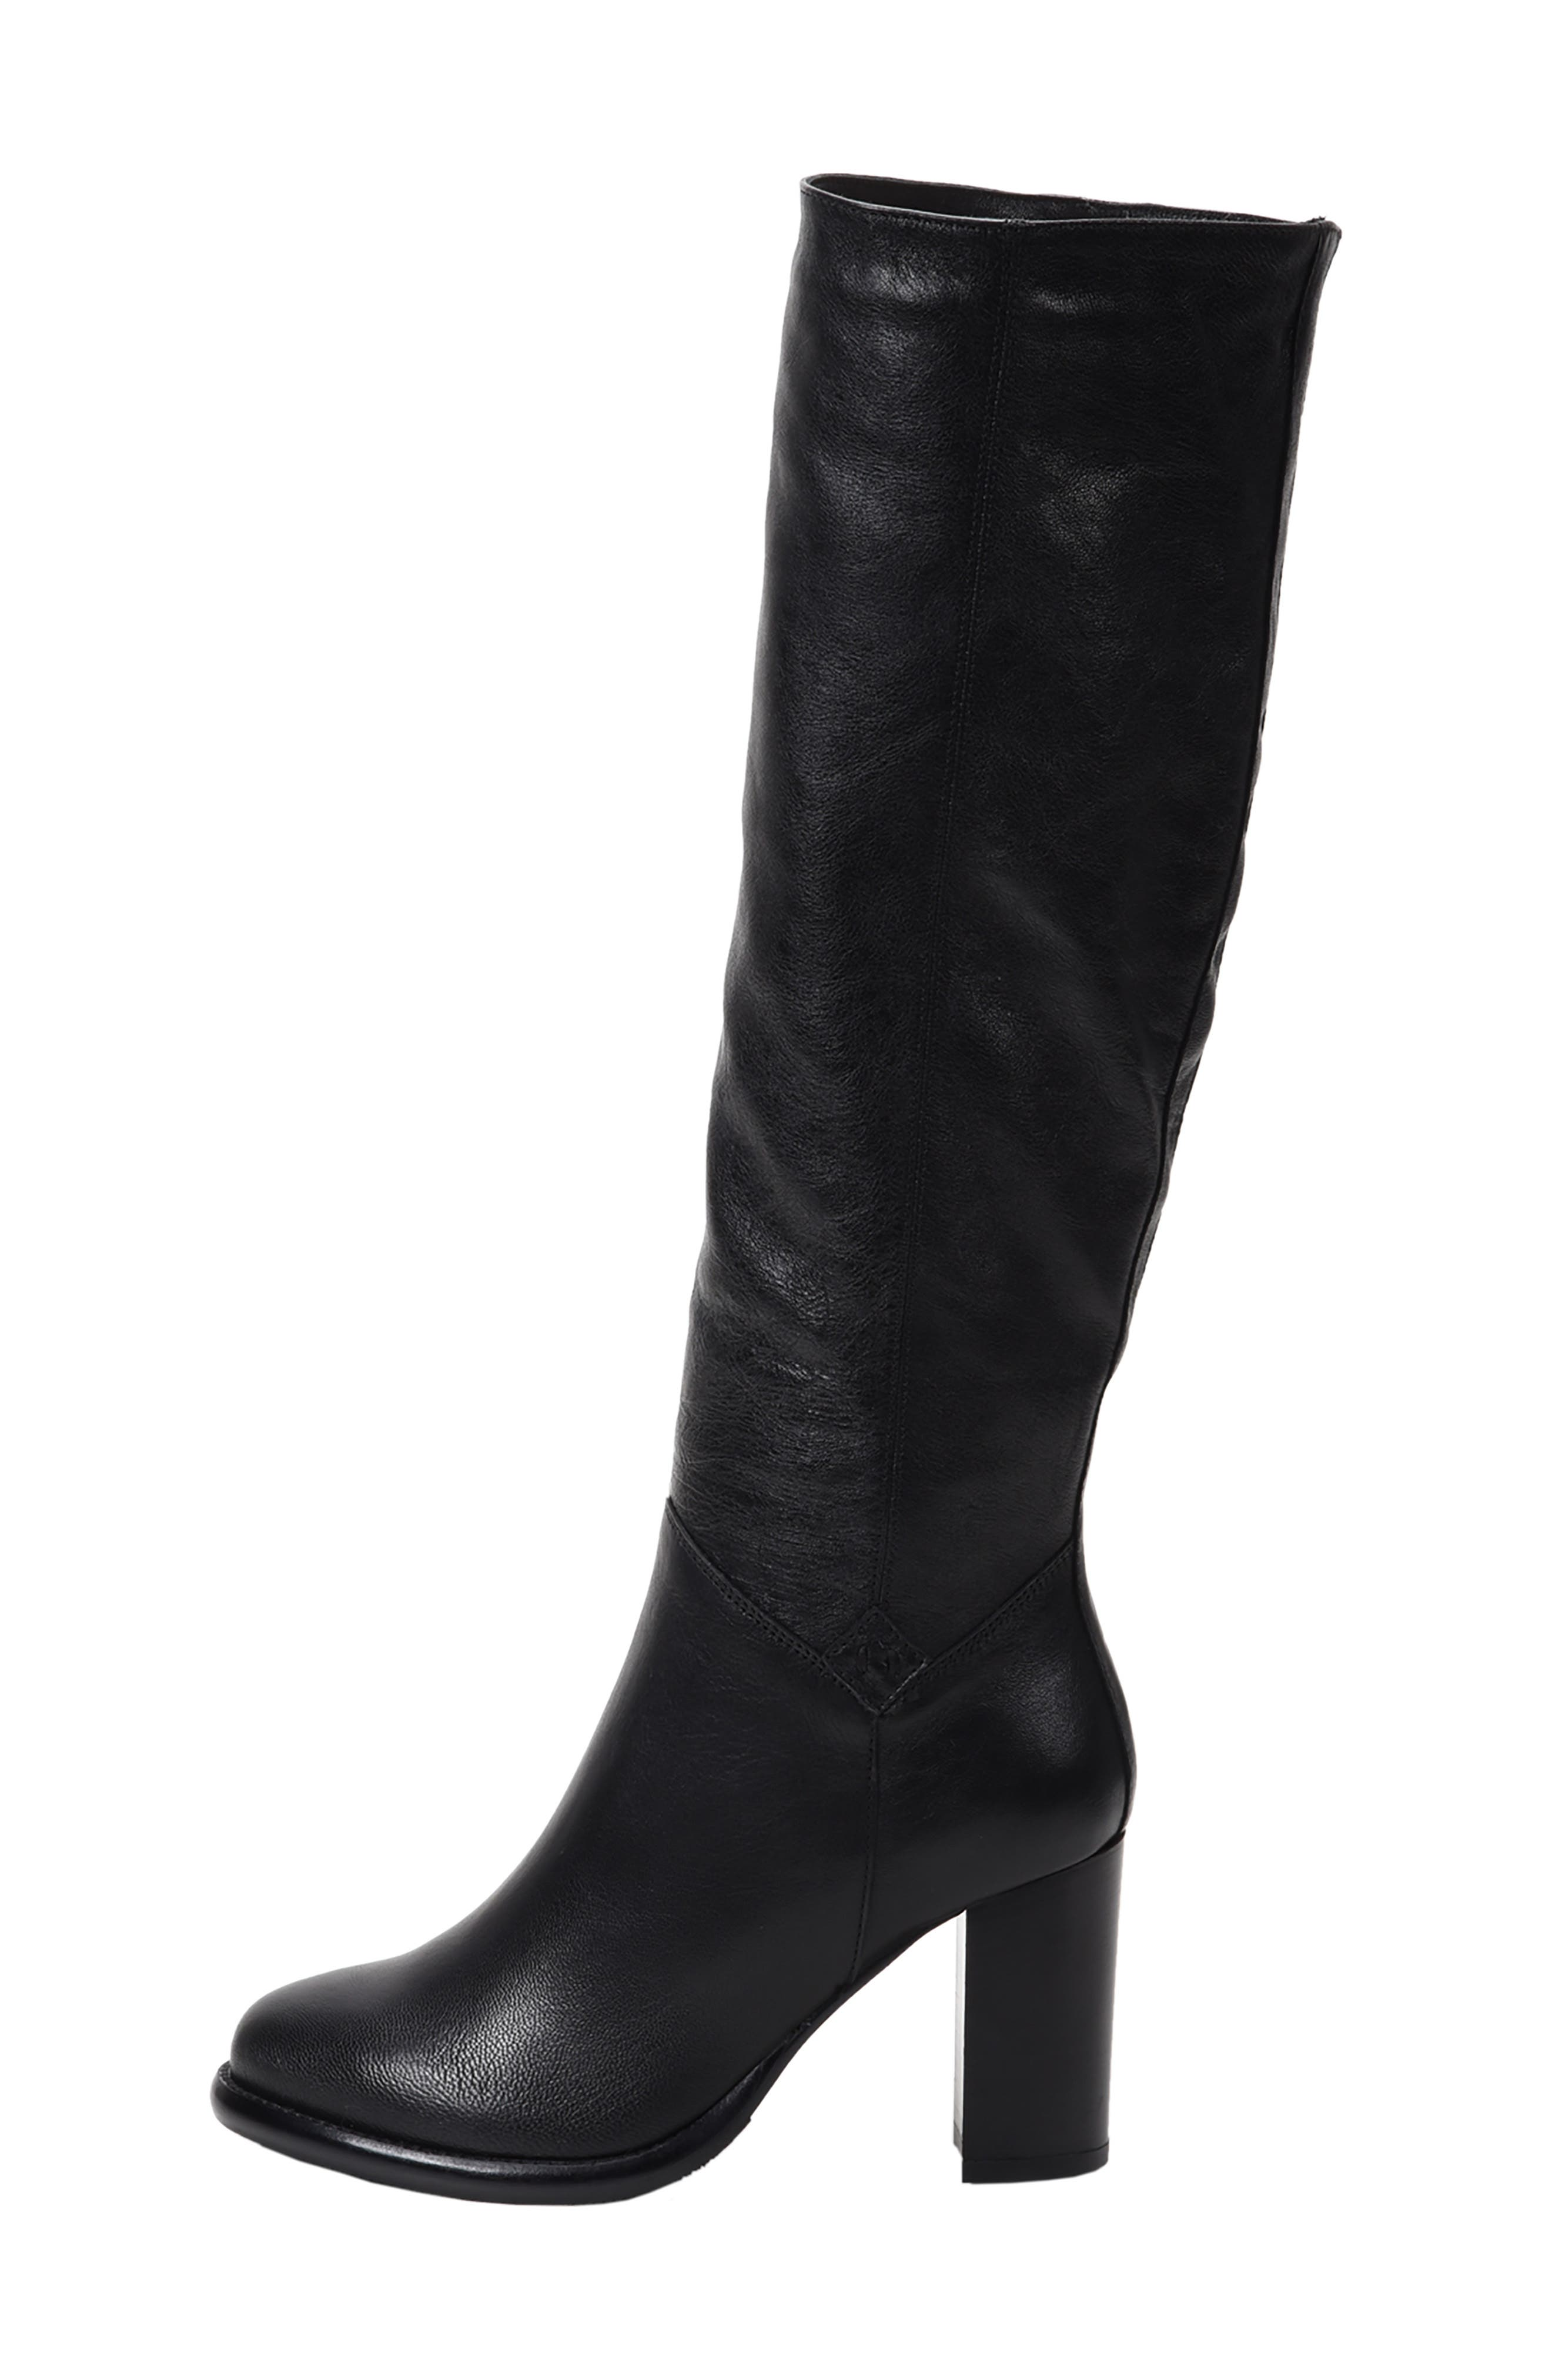 Michela SP Waterproof Genuine Shearling Lined Boot,                             Alternate thumbnail 2, color,                             BLACK METALLIC LEATHER